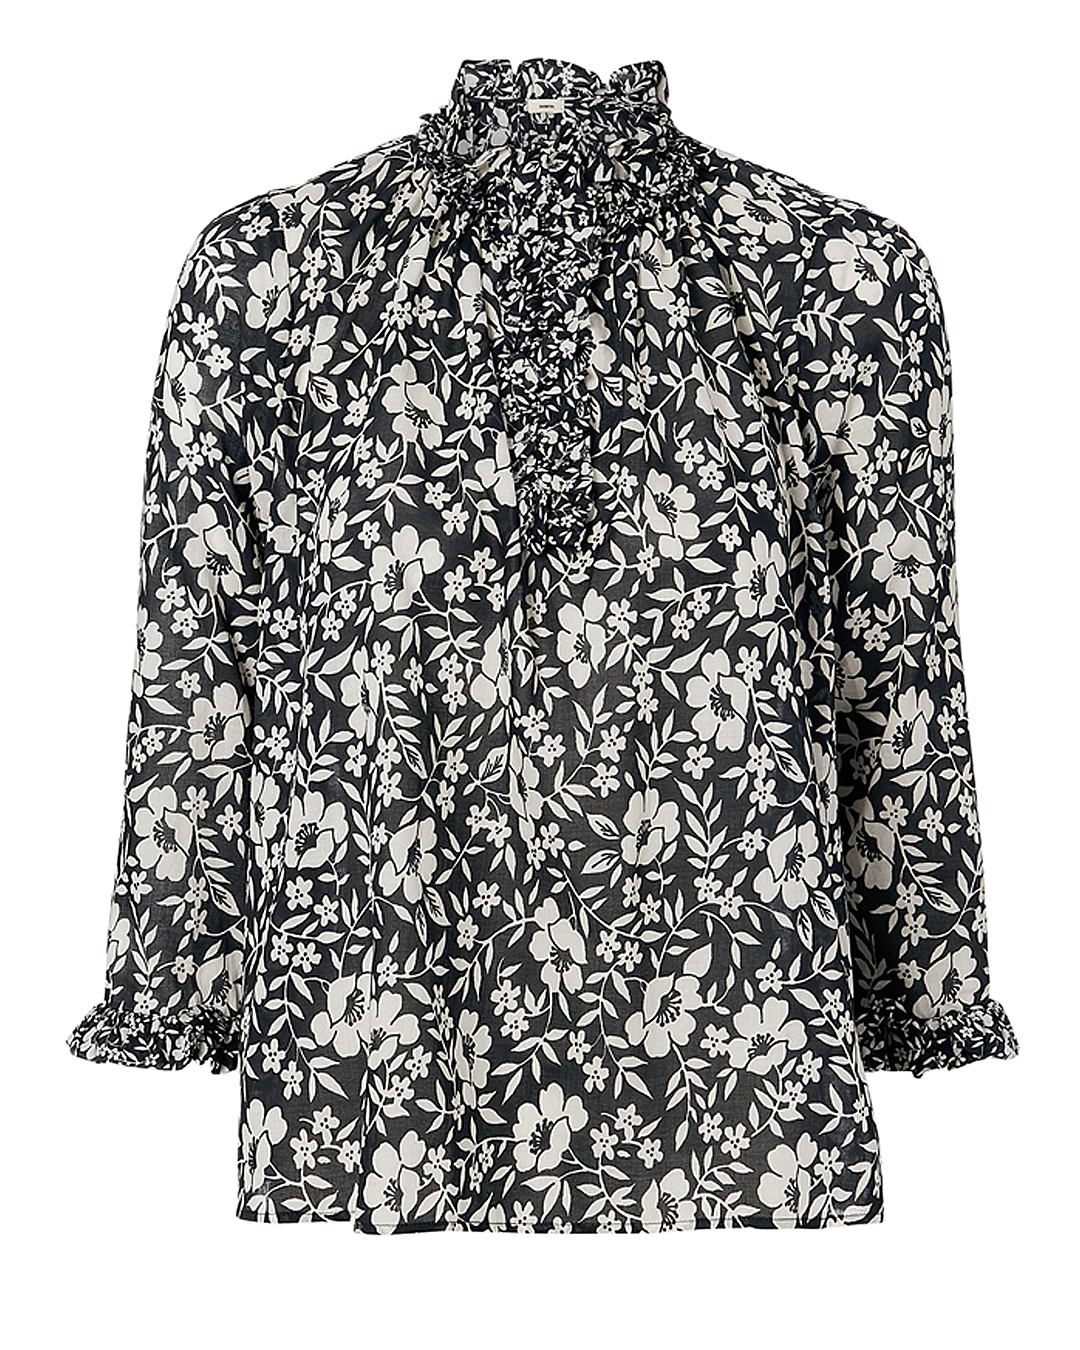 WARM Ines Floral Blouse